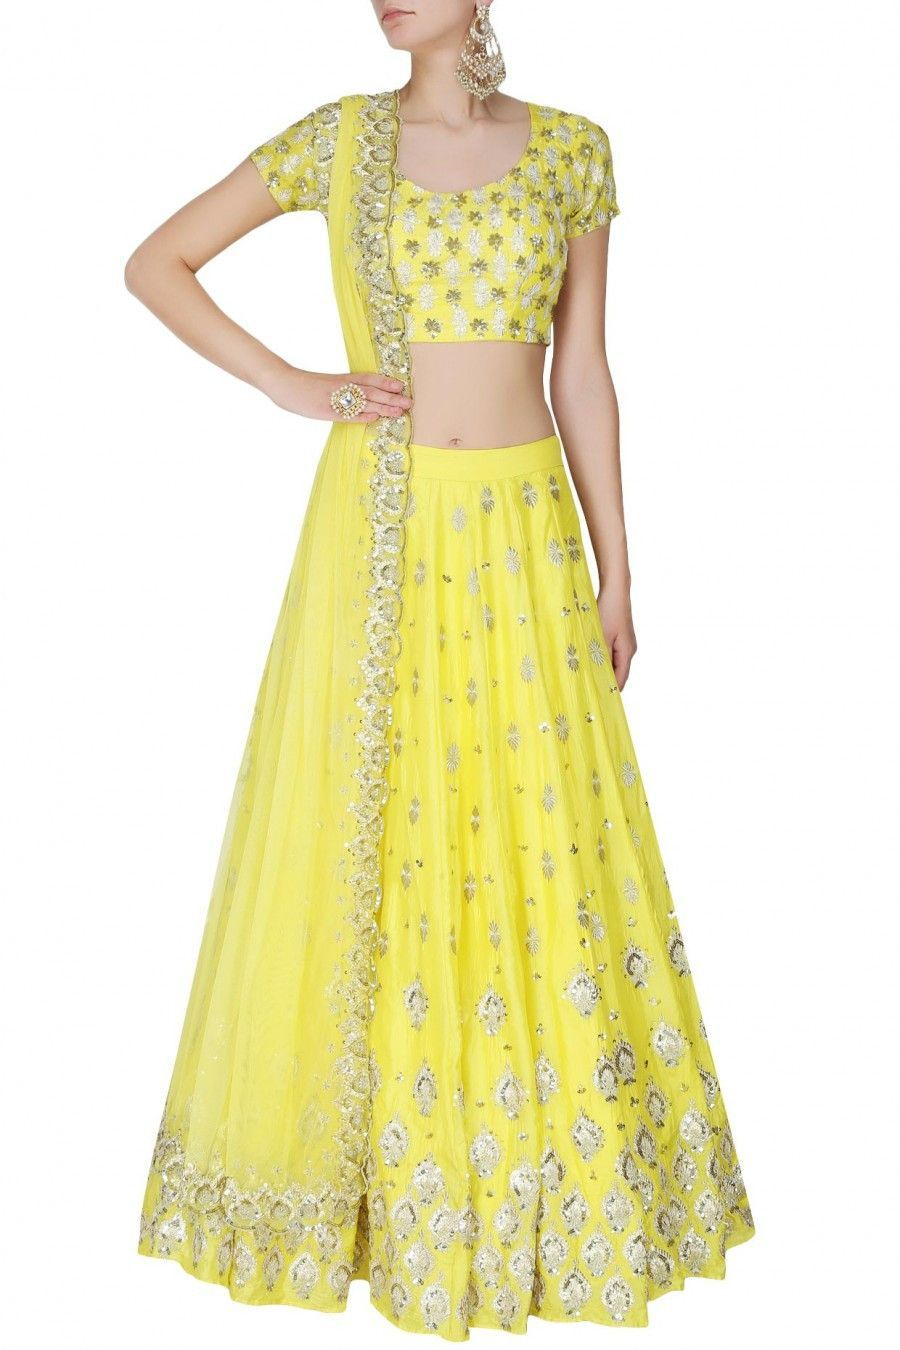 e3d6270d192a5 This set features a yellow lehenga in silk base with gold gota and sequins  motifs all over the front and back. It has a can-can underlayer.